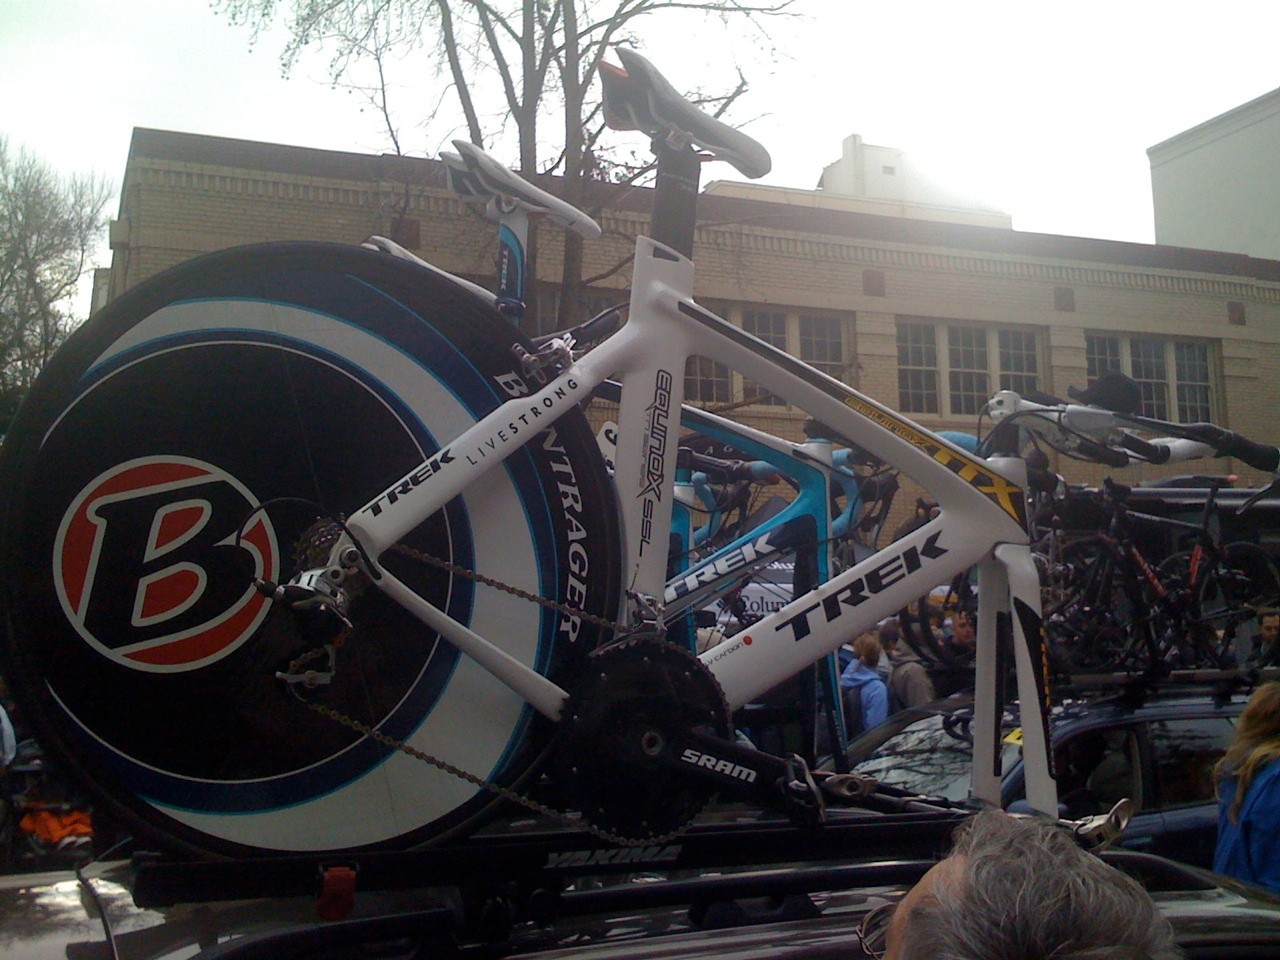 Armstrong's back-up time trial bike. Will he use it in Solvang?